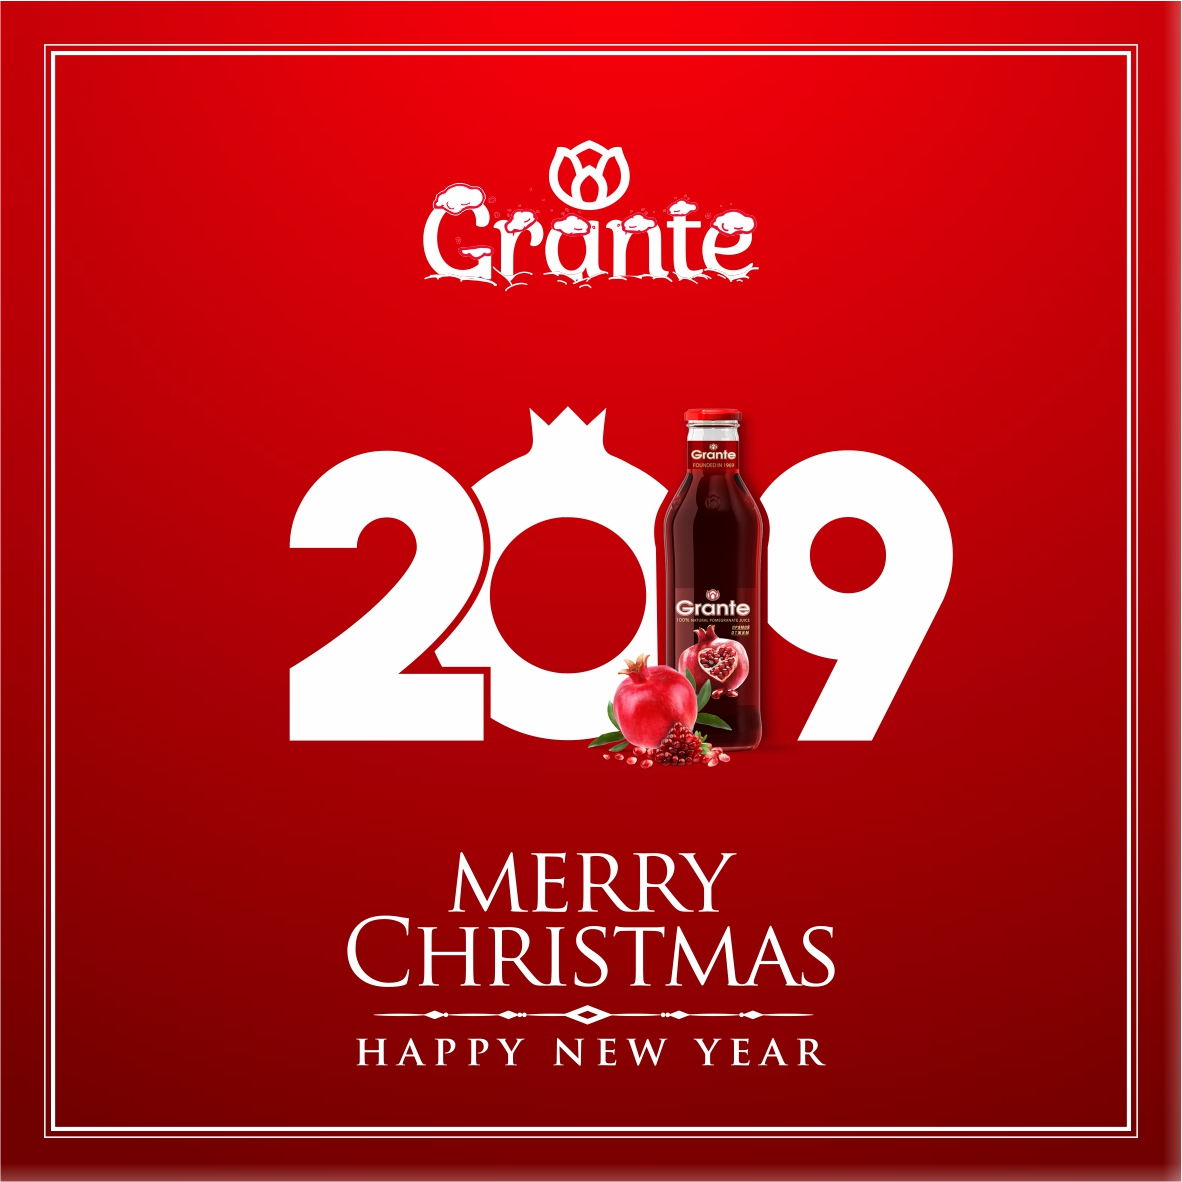 Grante_Happy New Year 2019.jpg